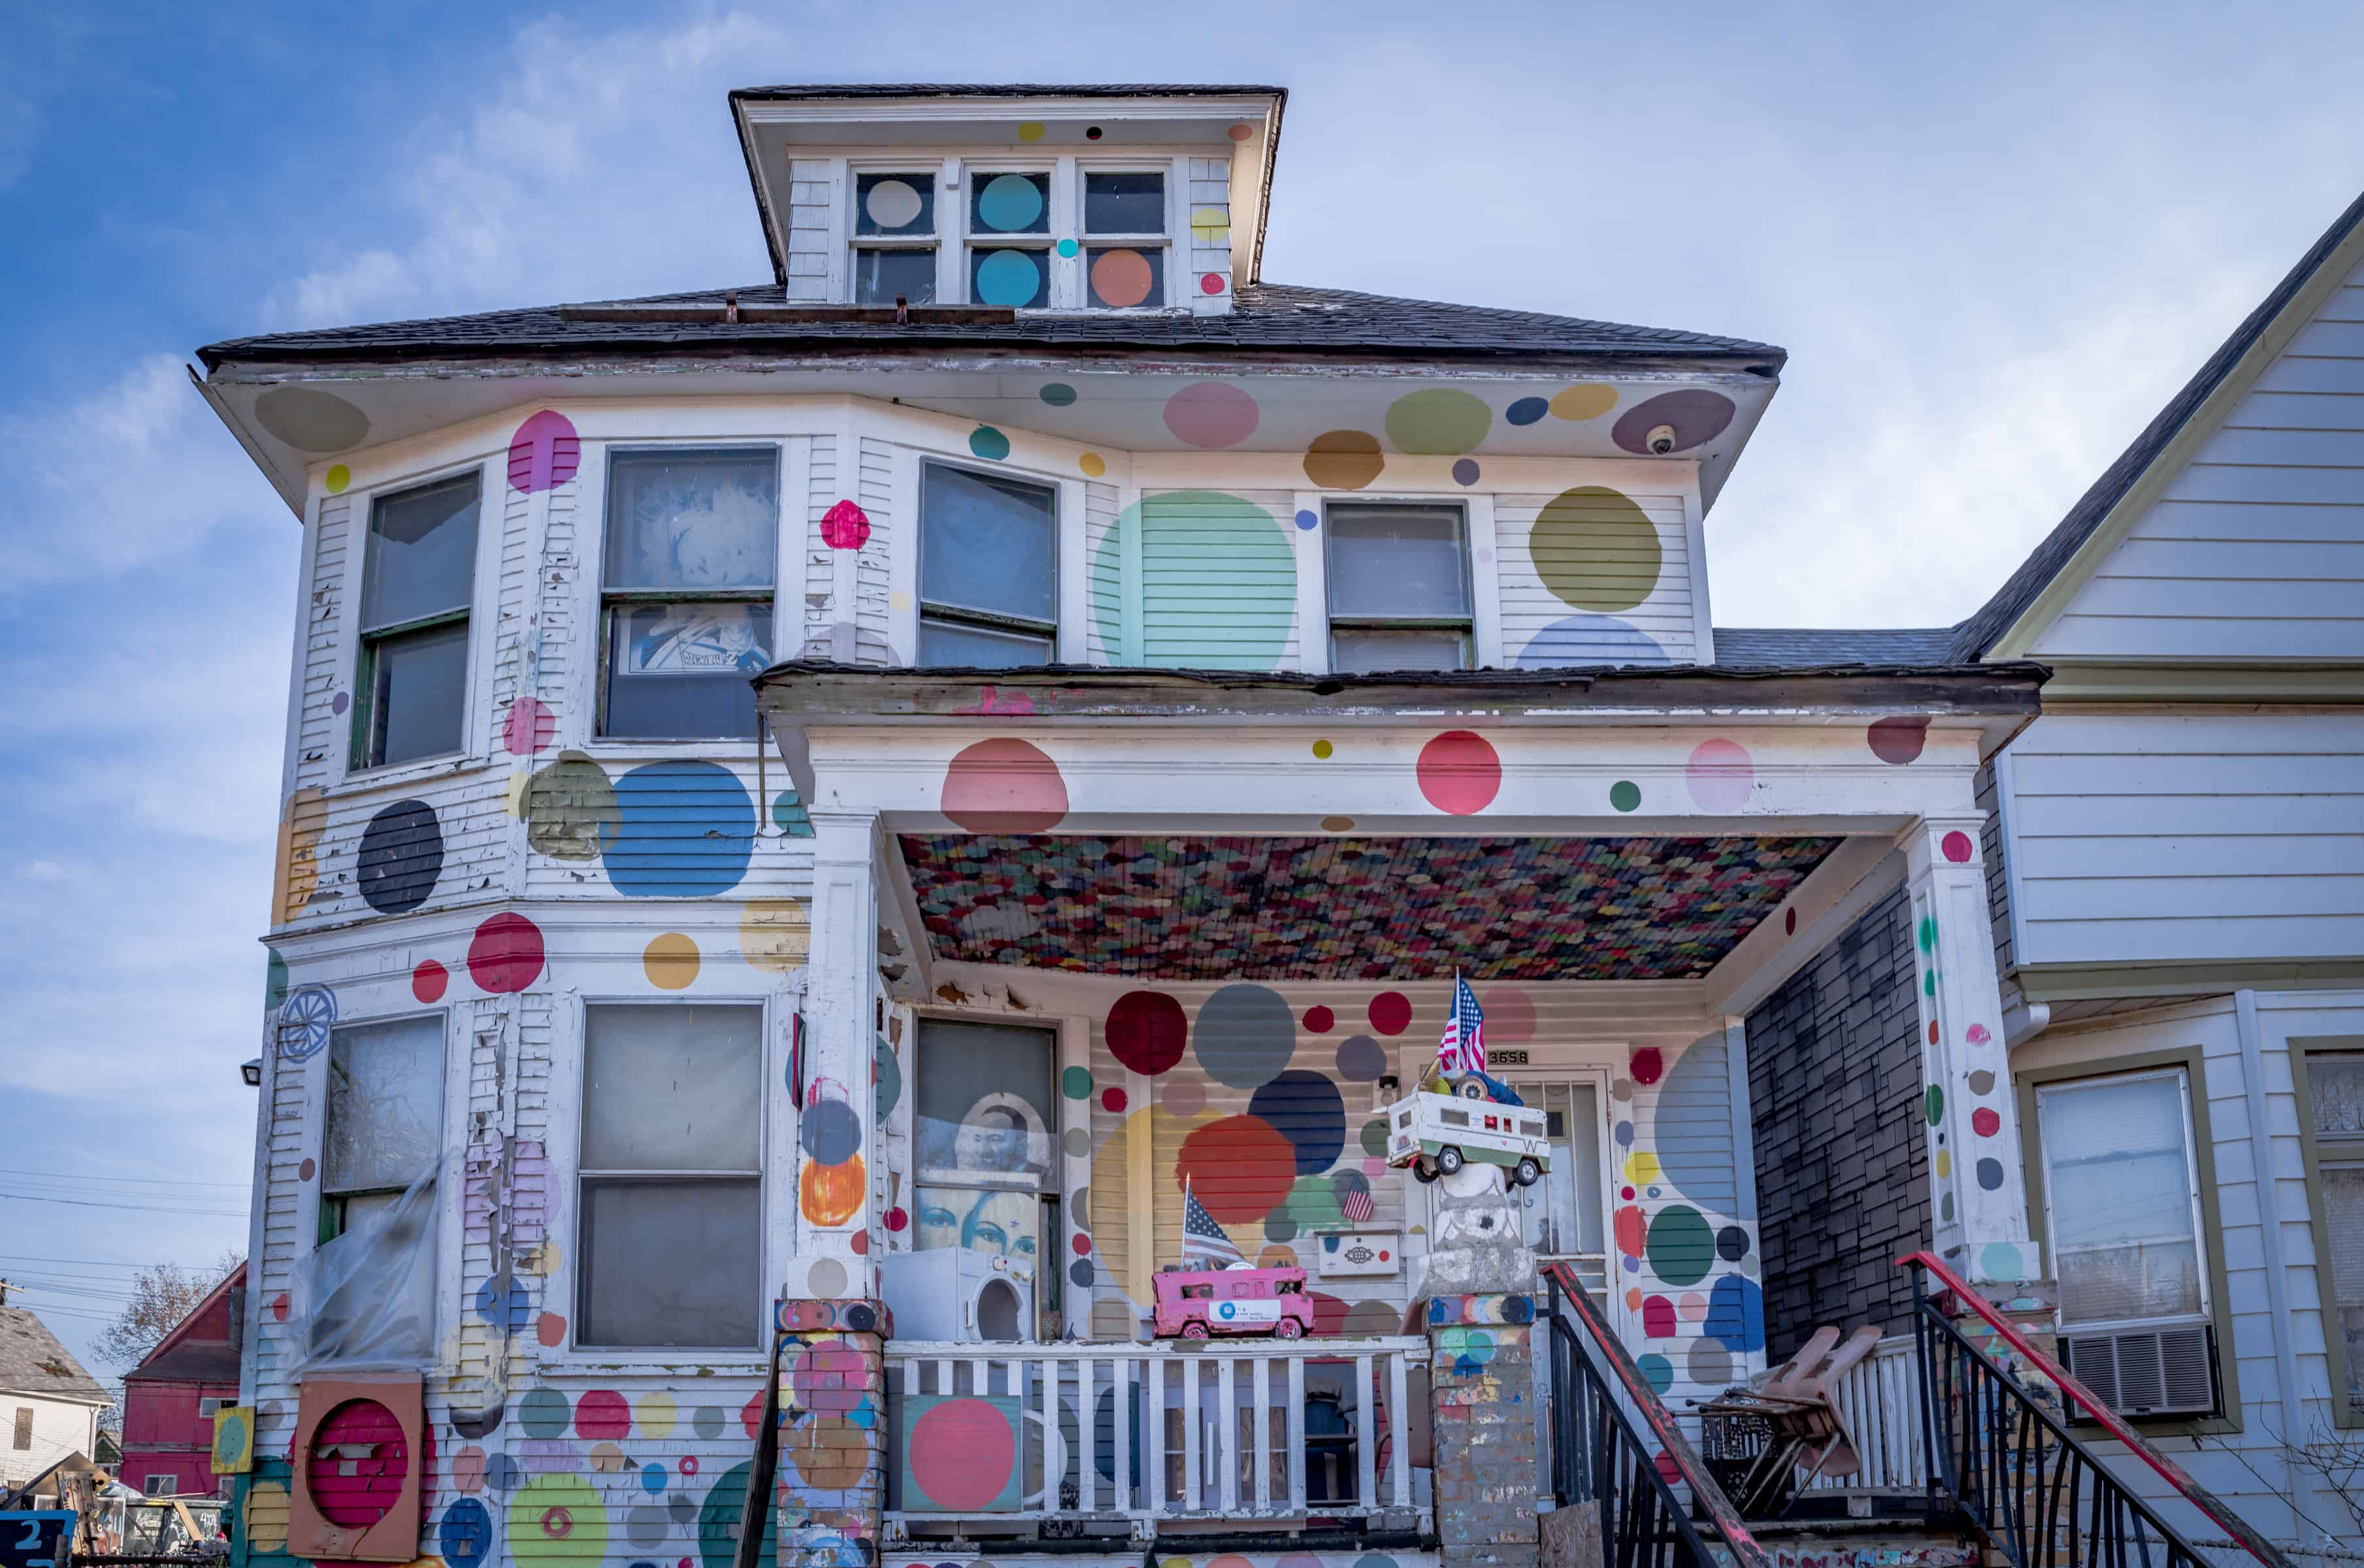 The Heidelberg Project in Detroit, Michigan, USA